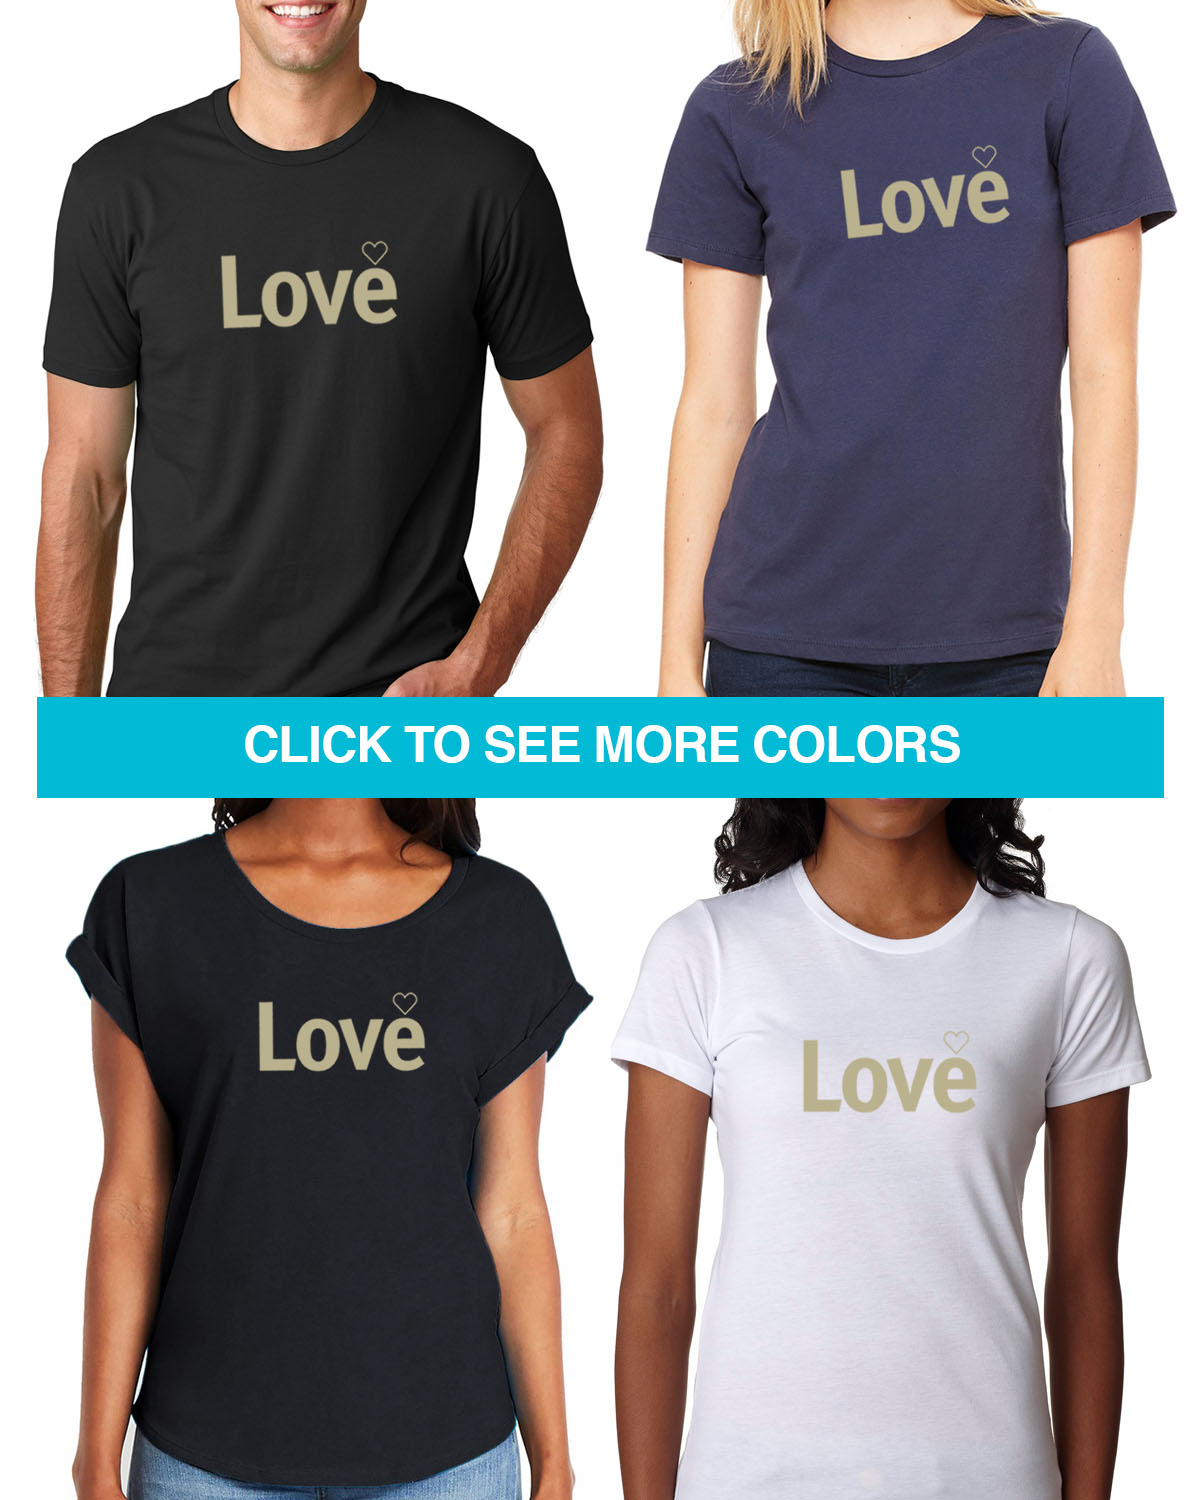 Love Tees for Men & Women